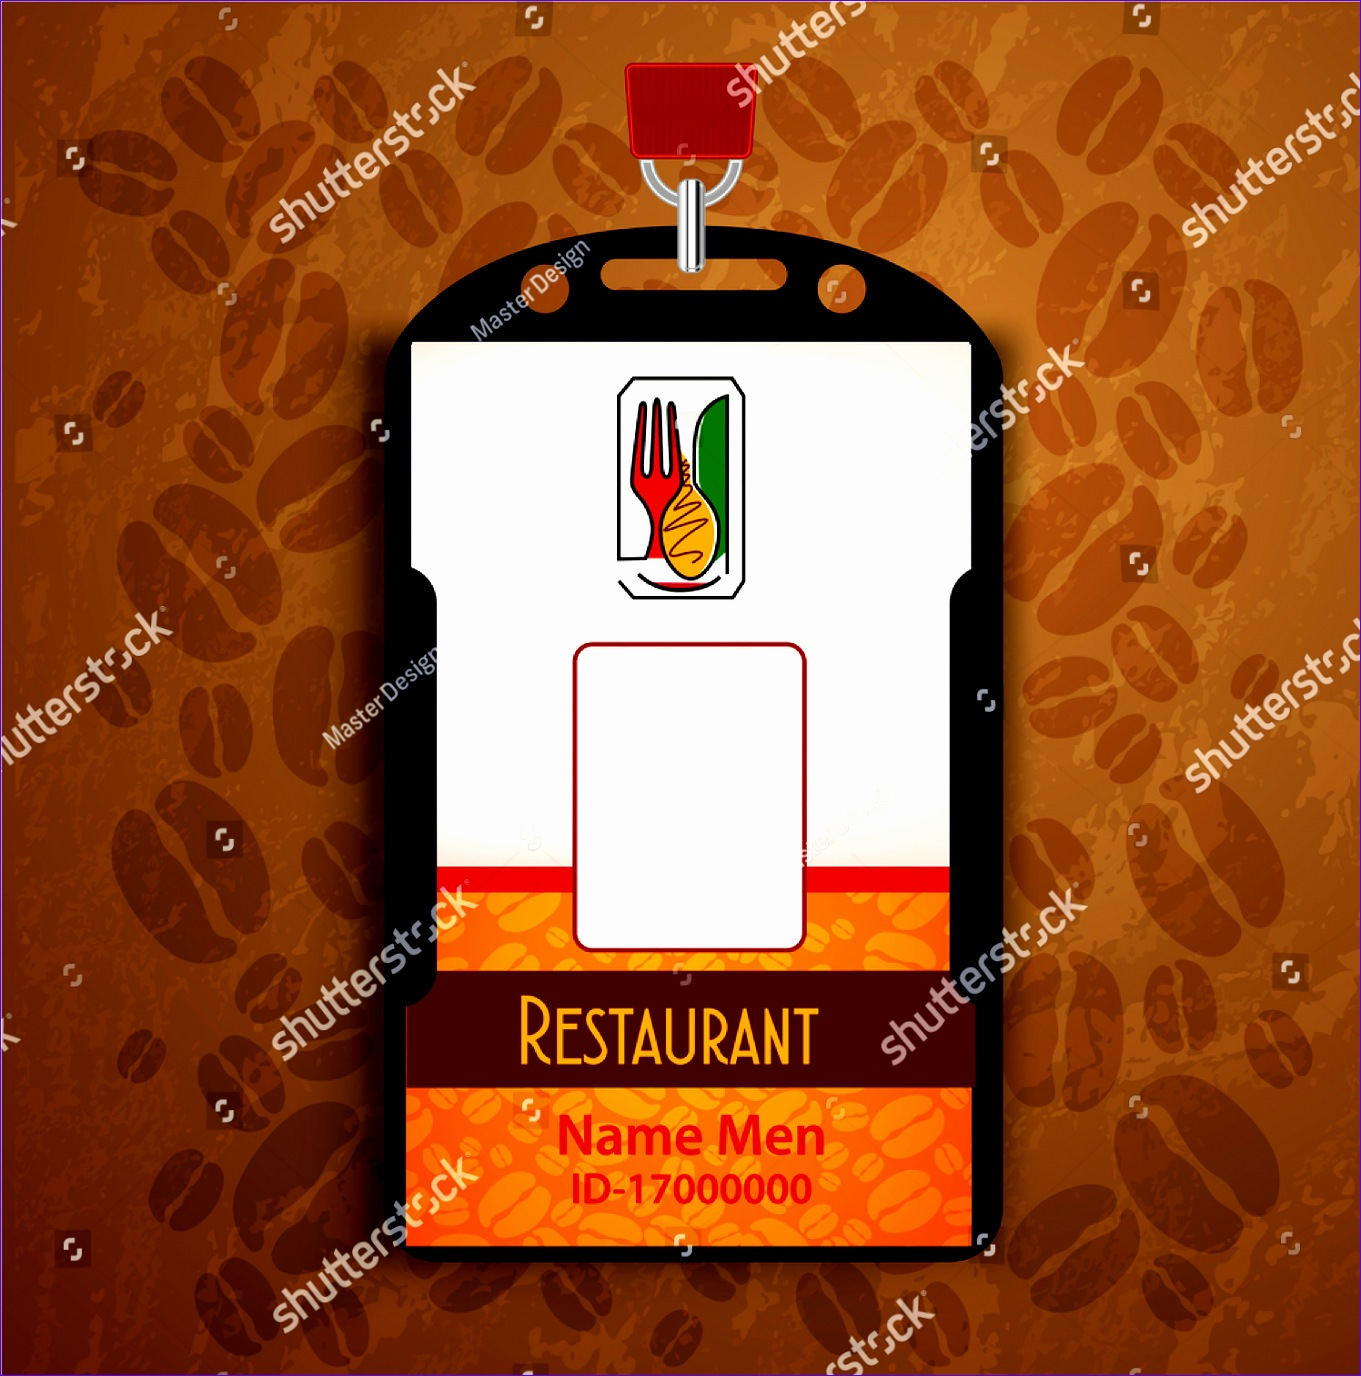 Restaurant ID Card Design